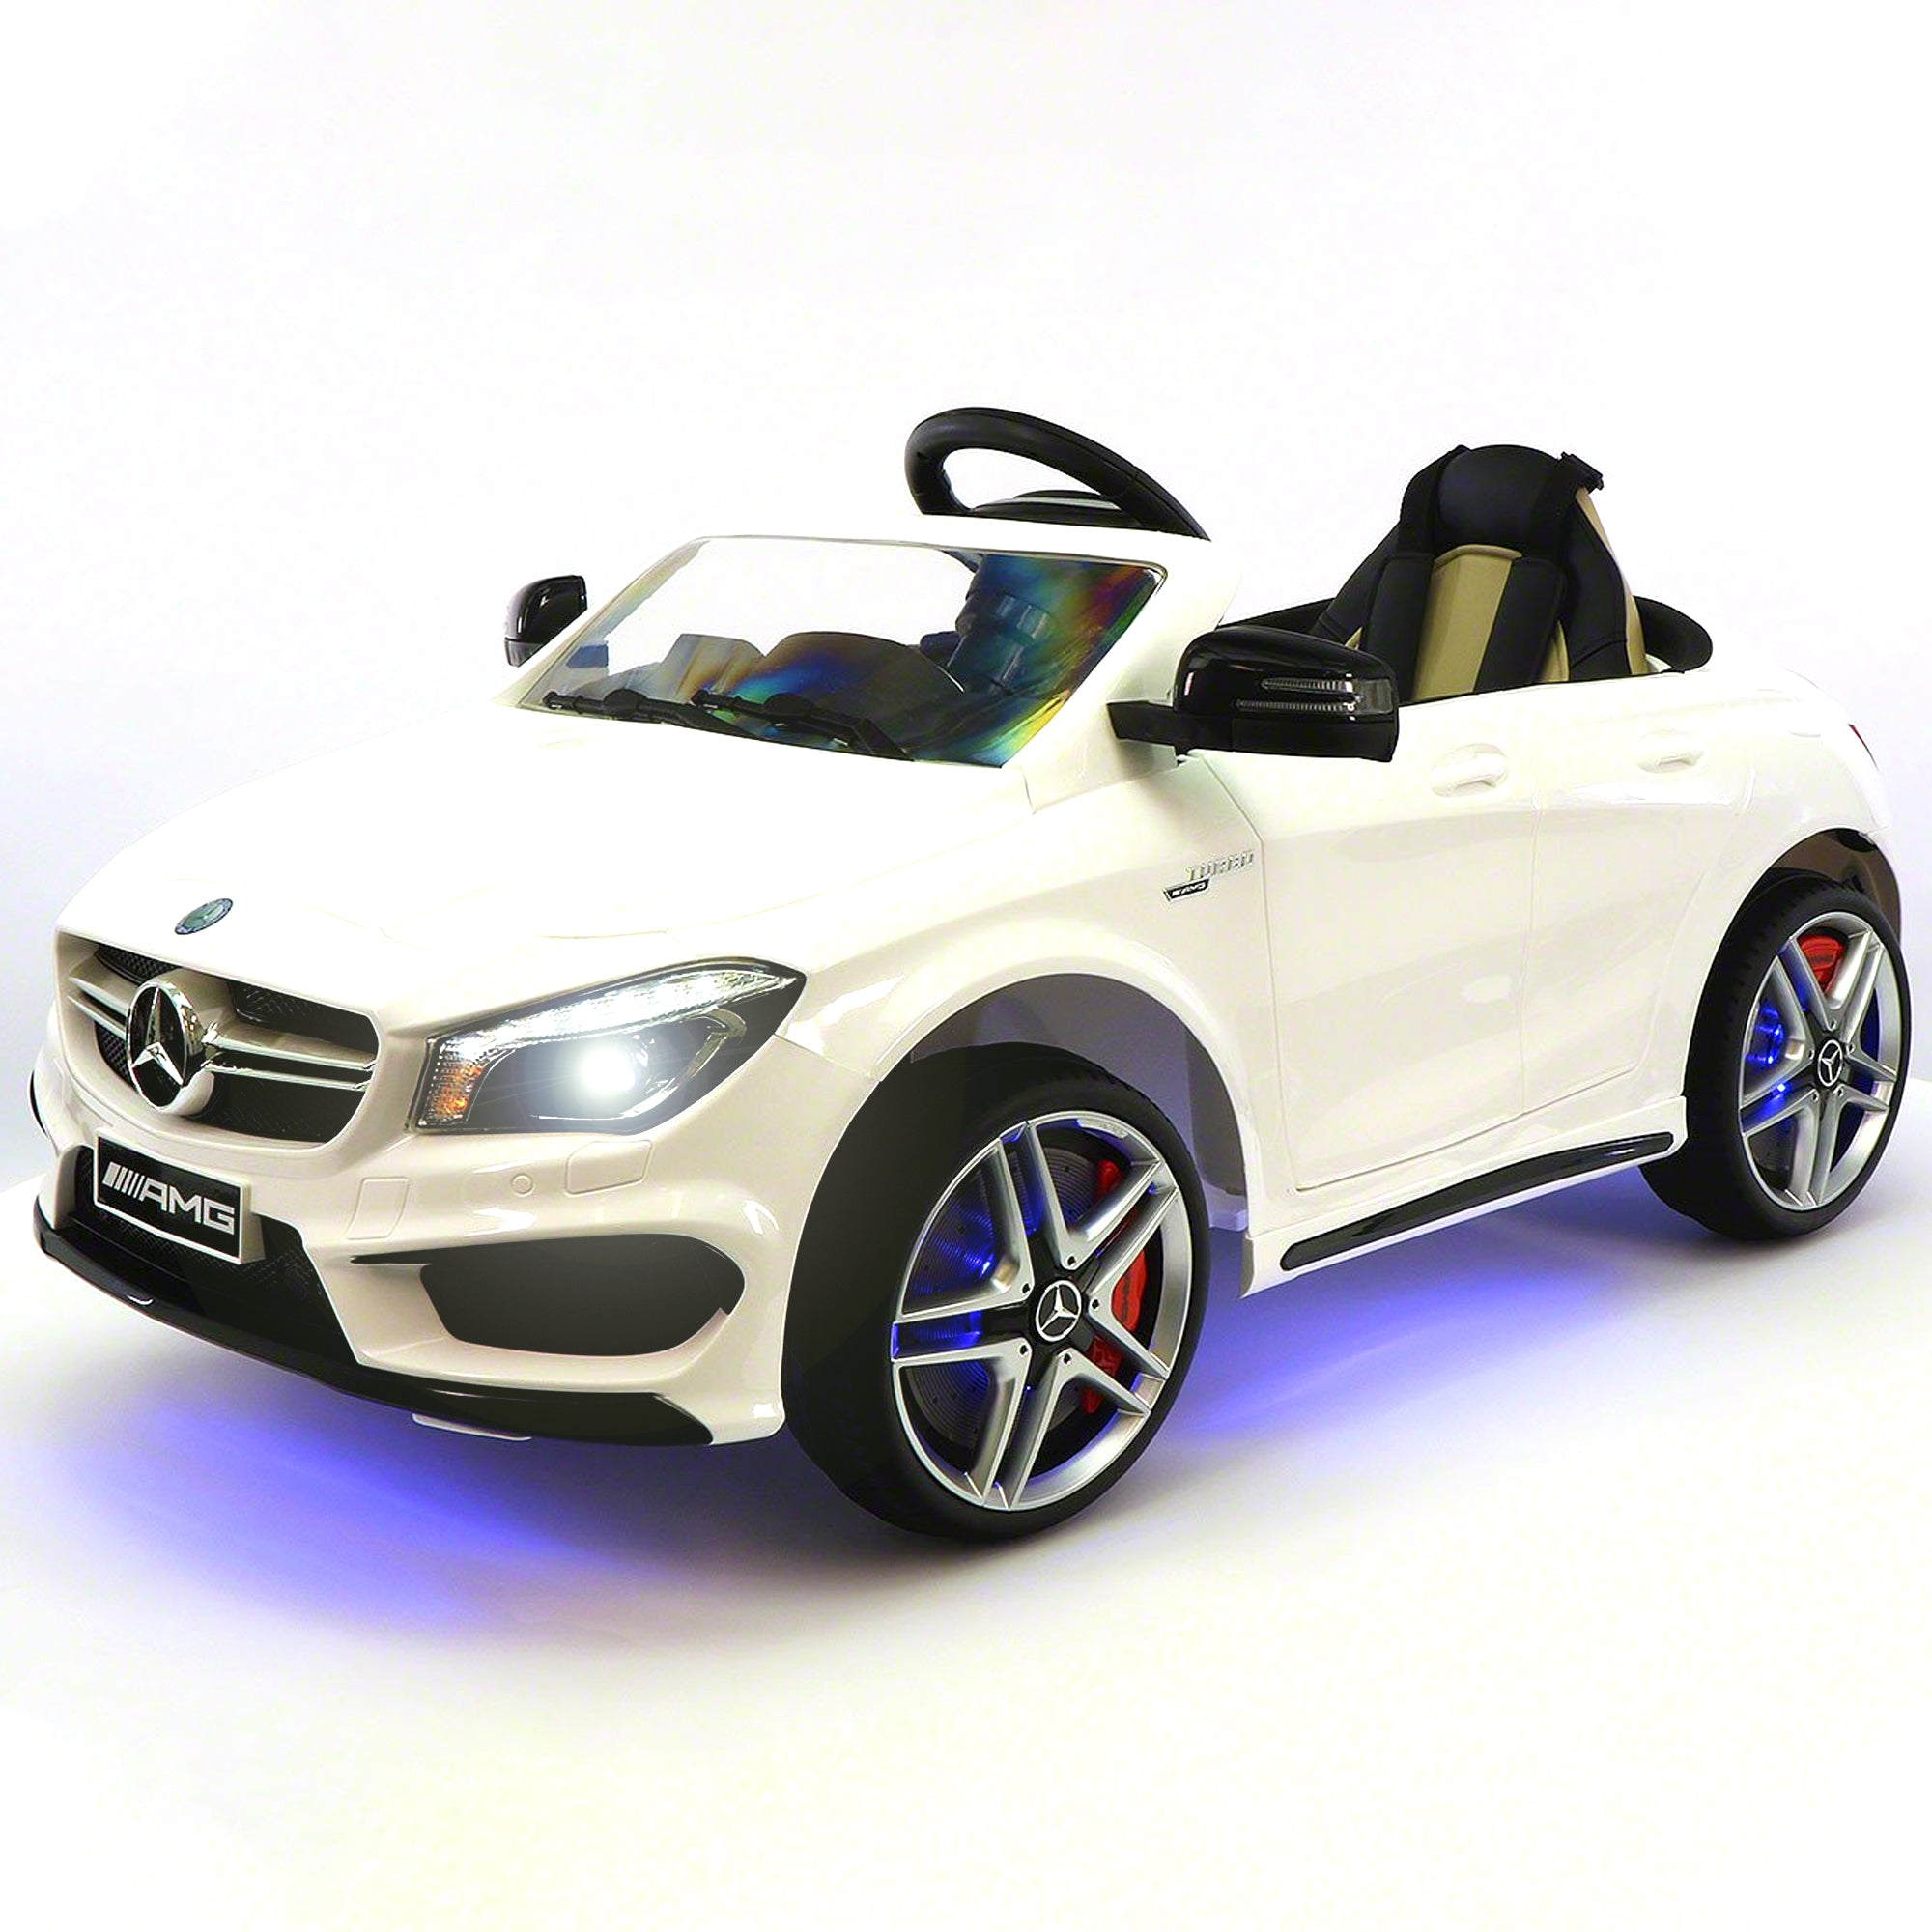 2019 Mercedes Benz CLA 12V Ride On Car for Kids | 12V Engine Power Licensed Kid Car to Drive with Remote, Dining Table, Leather Seat, Openable Doors, LED Lights - White - Jay Goodys